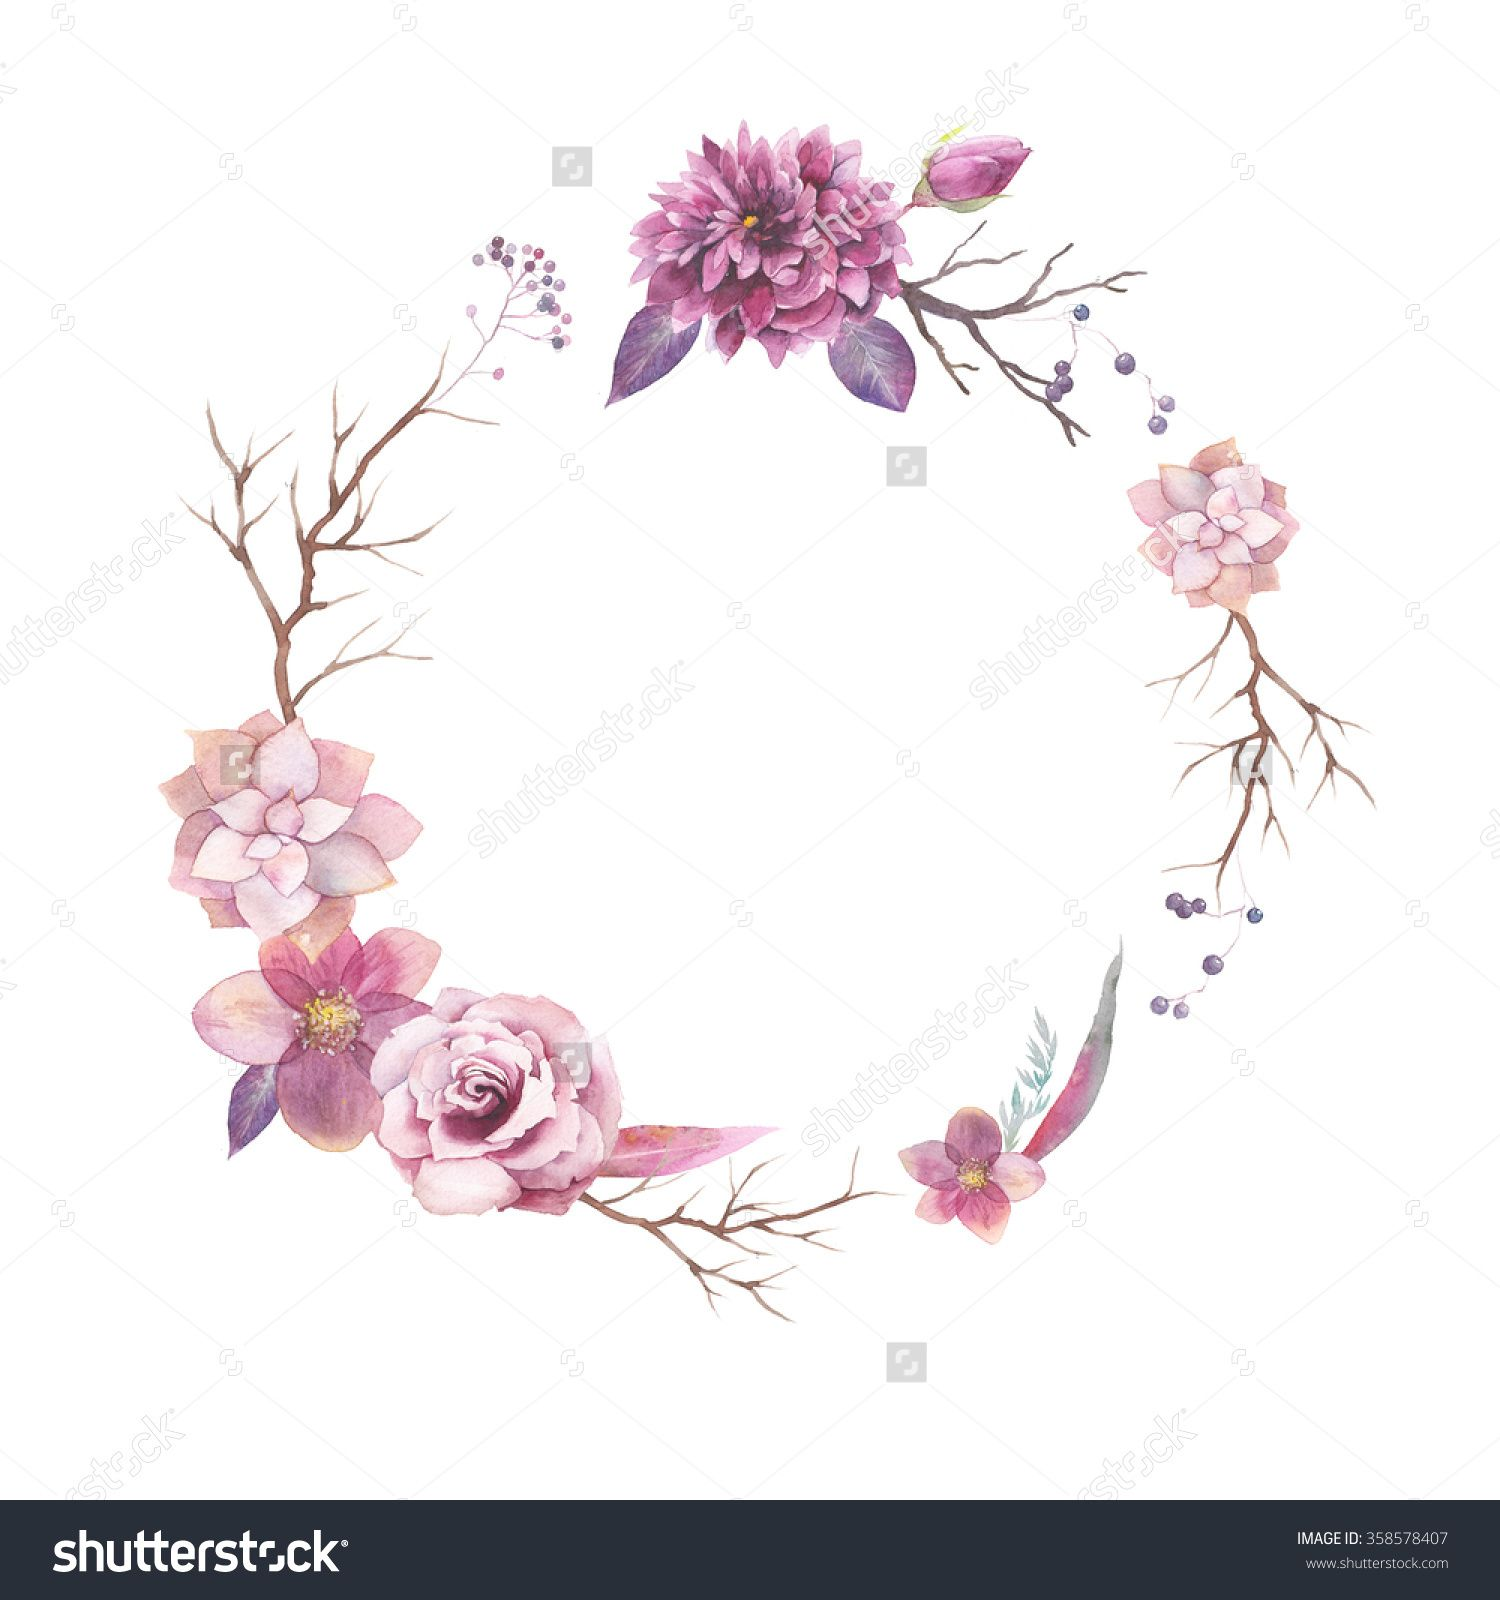 floral wall backdrop stone rustic - Google Search ...